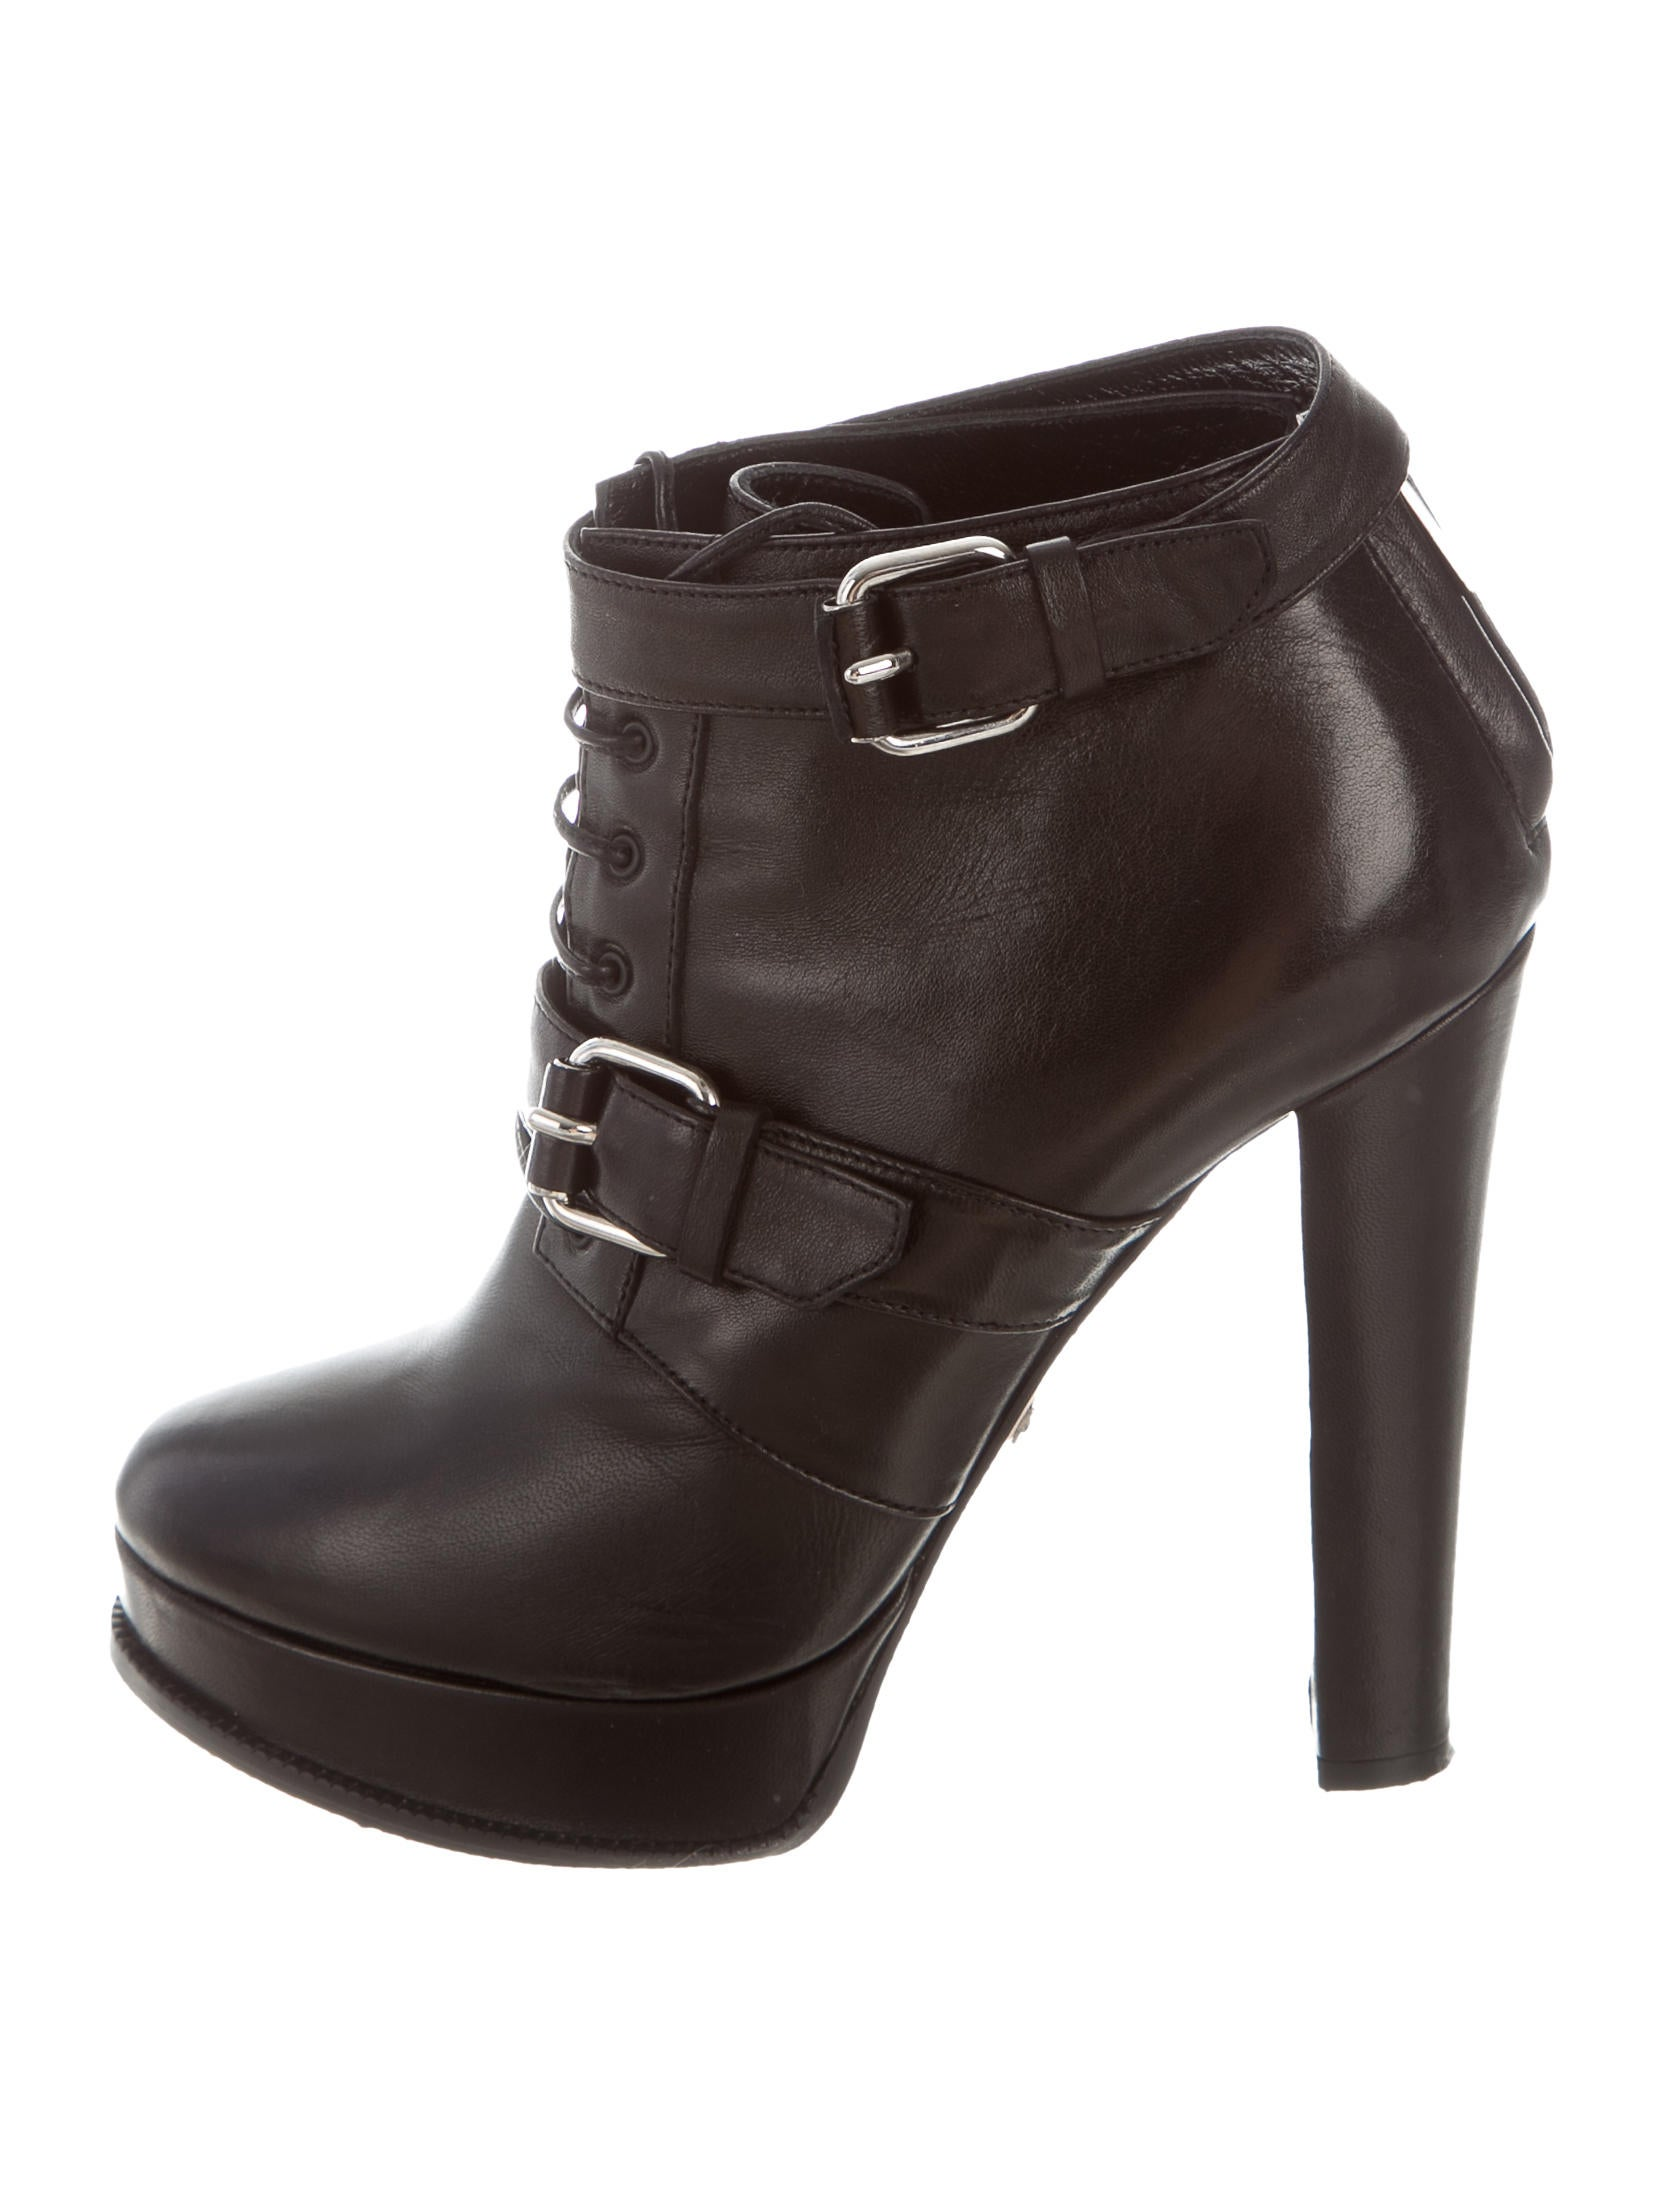 Tania Spinelli Lace-Up Platform Booties outlet store hot sale xDEuXI